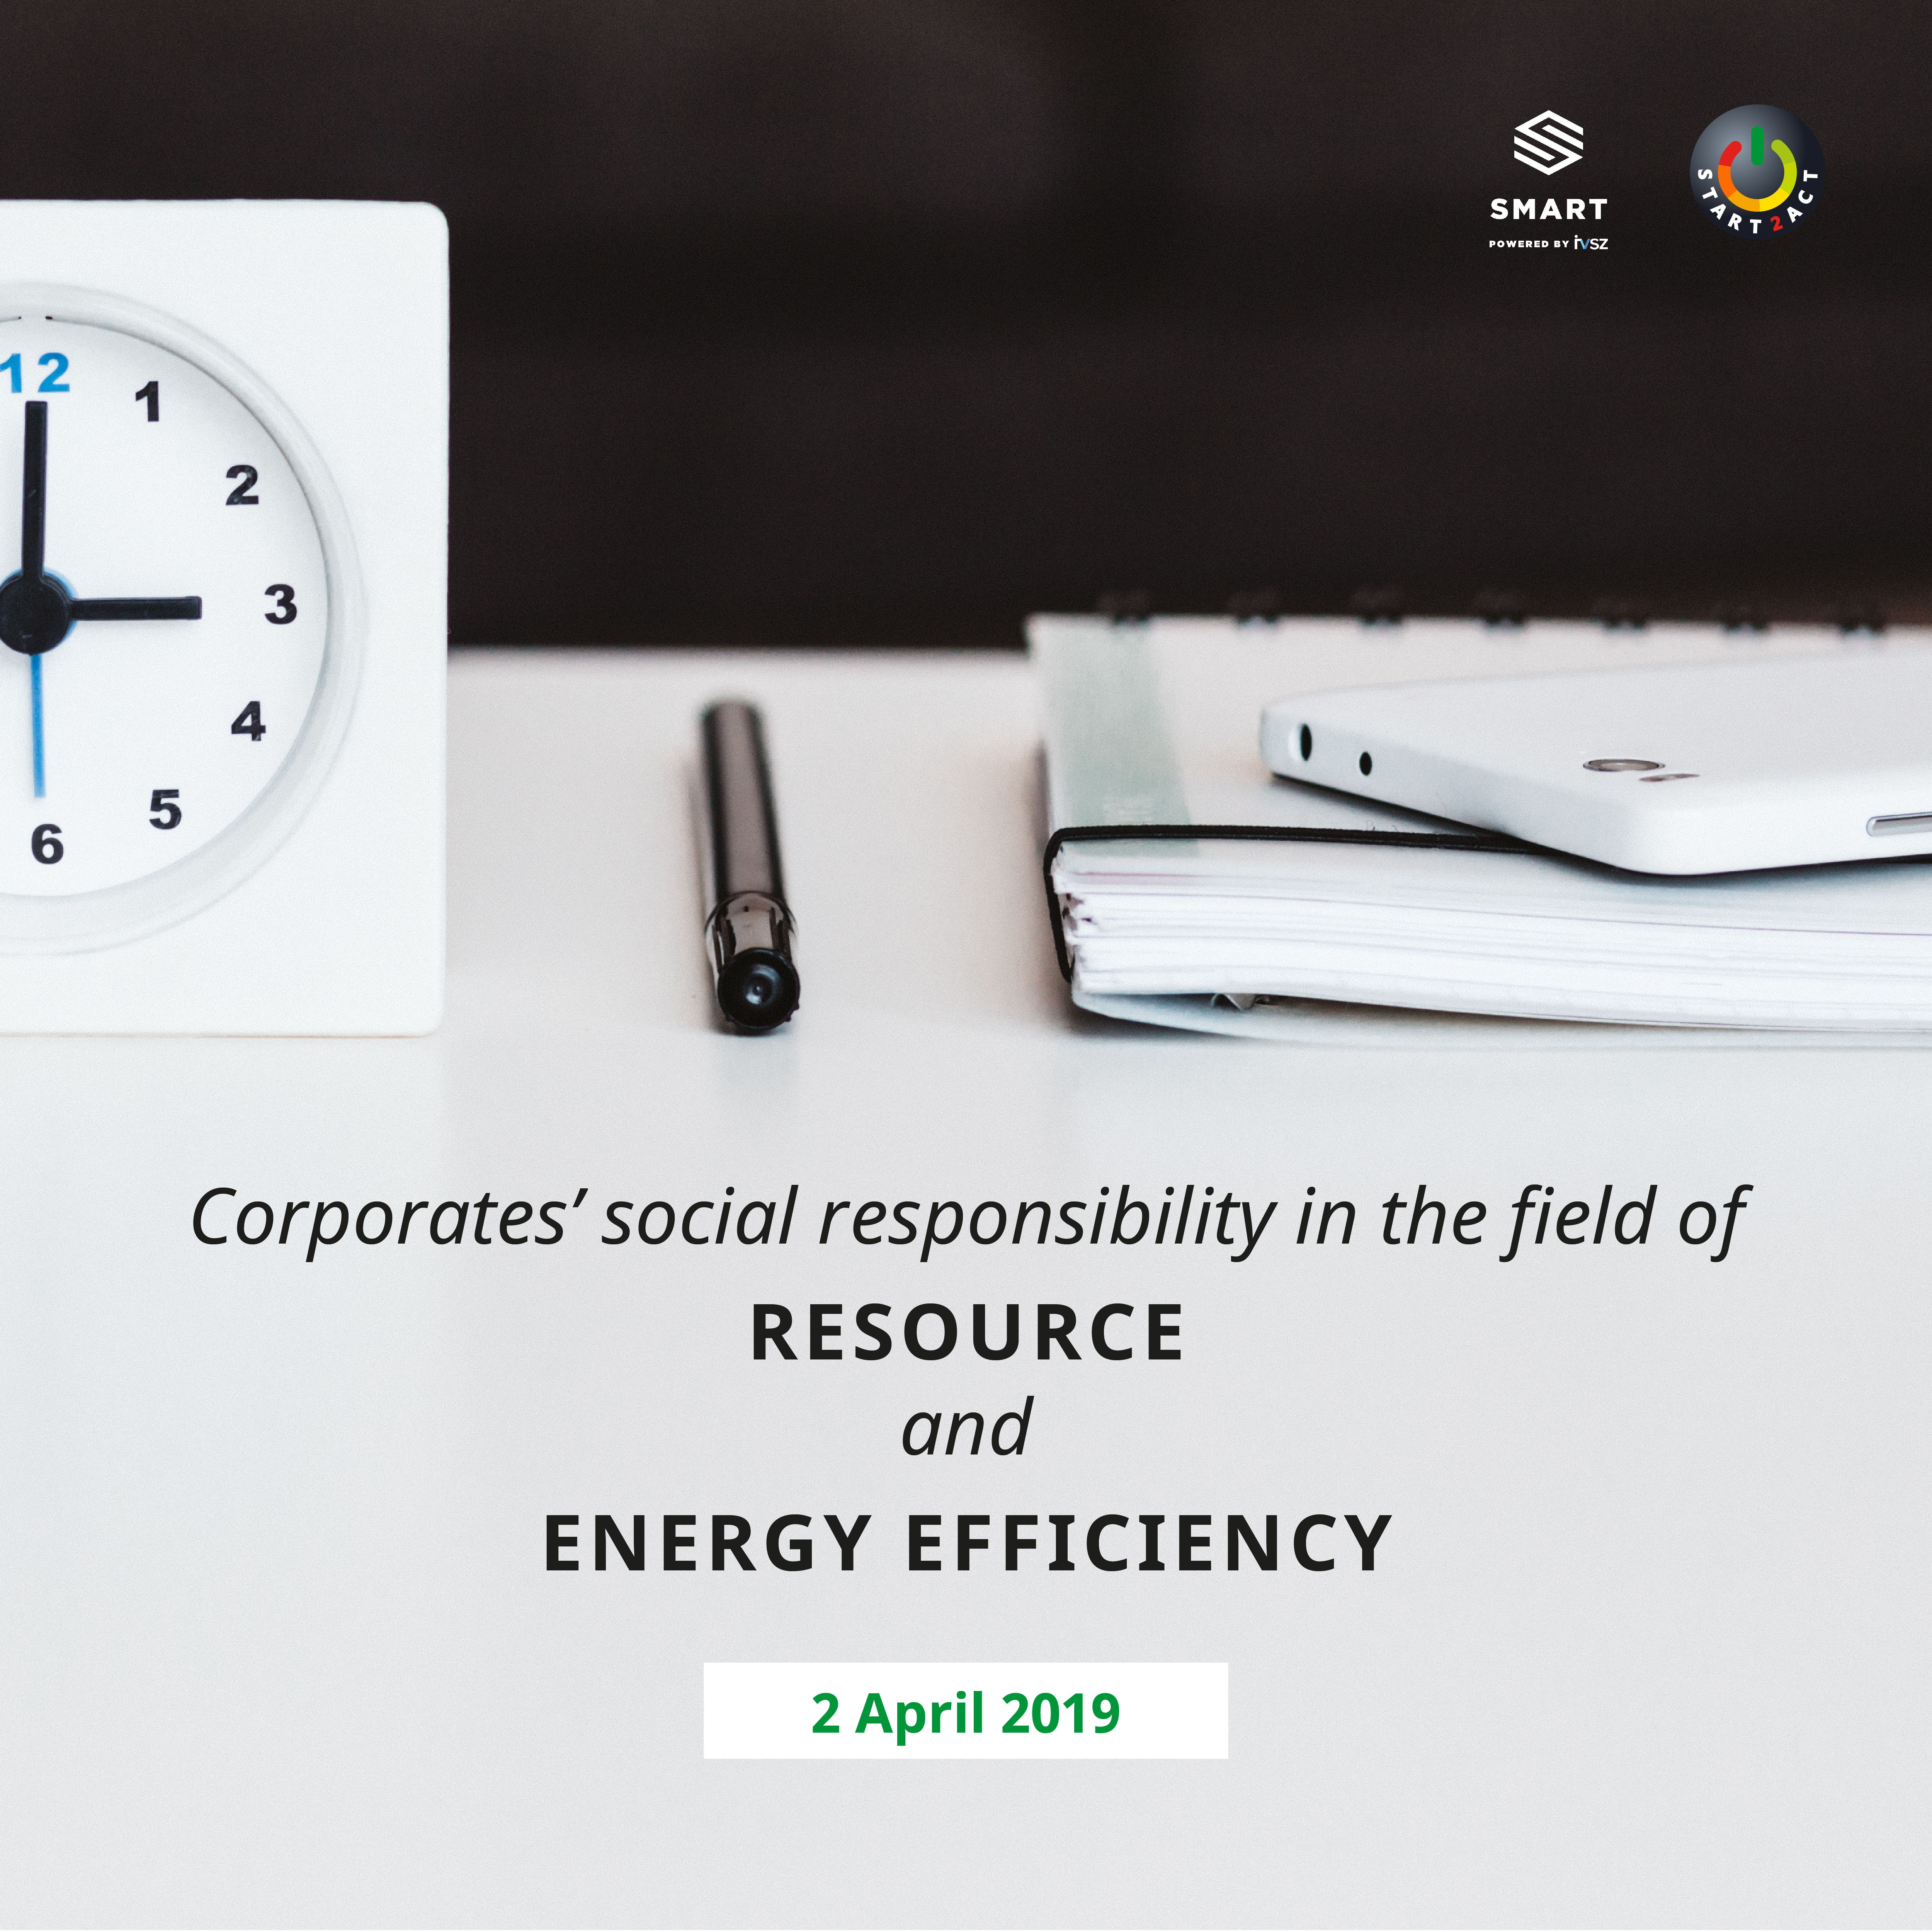 Social responsibility through resource and energy consciousness in businesses